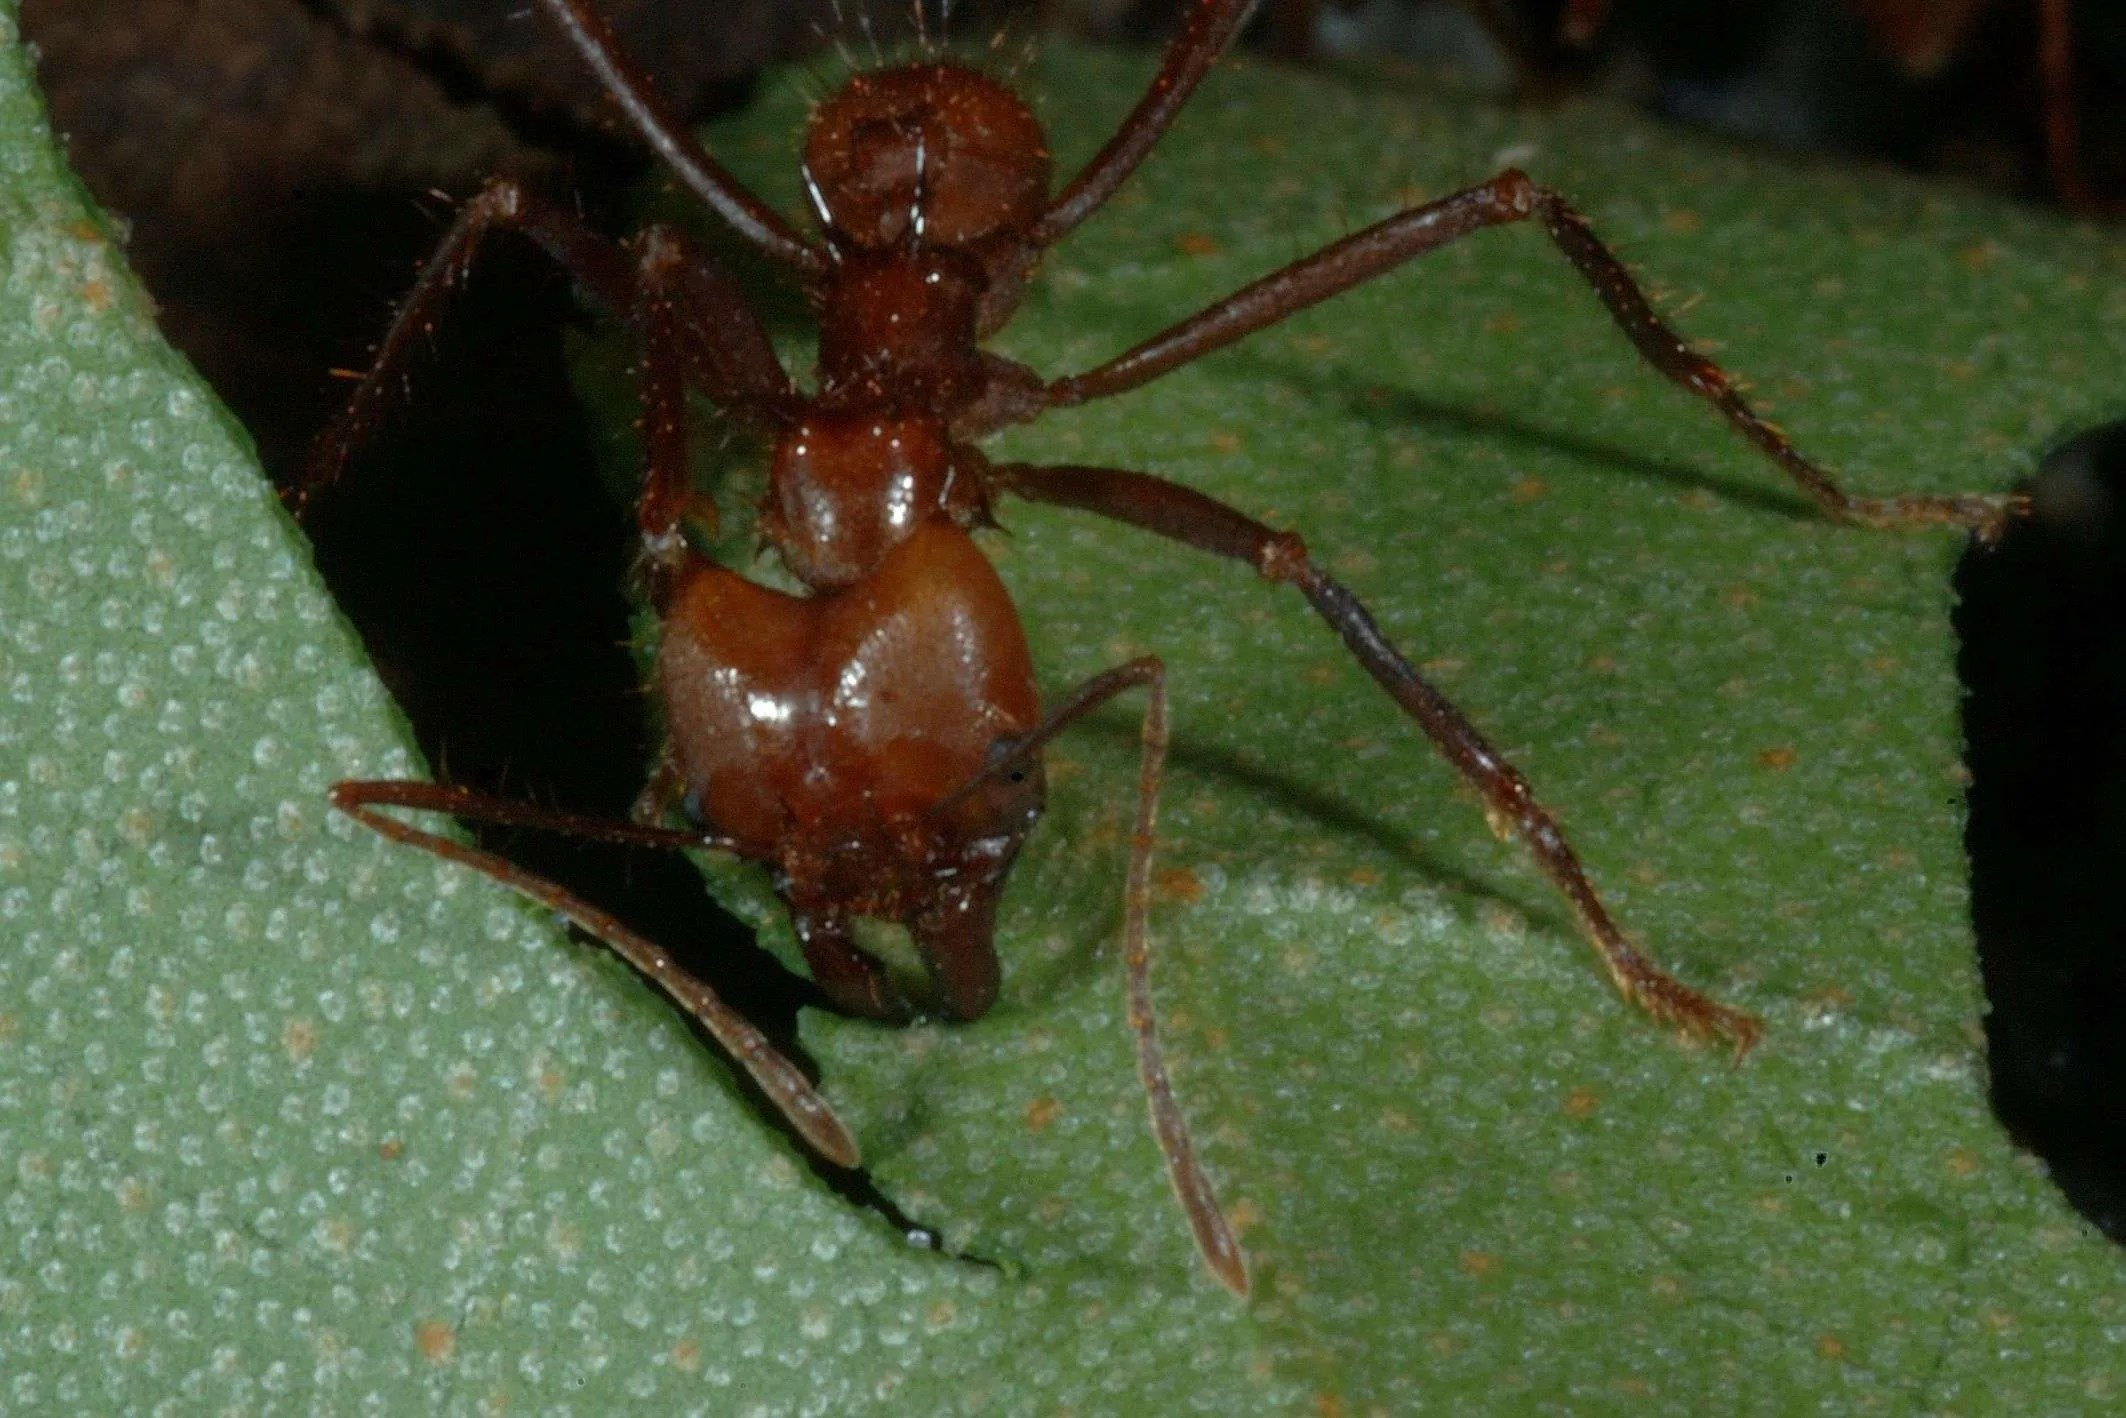 Tropical Insects: Amazing Leaf-Cutter Ants 1